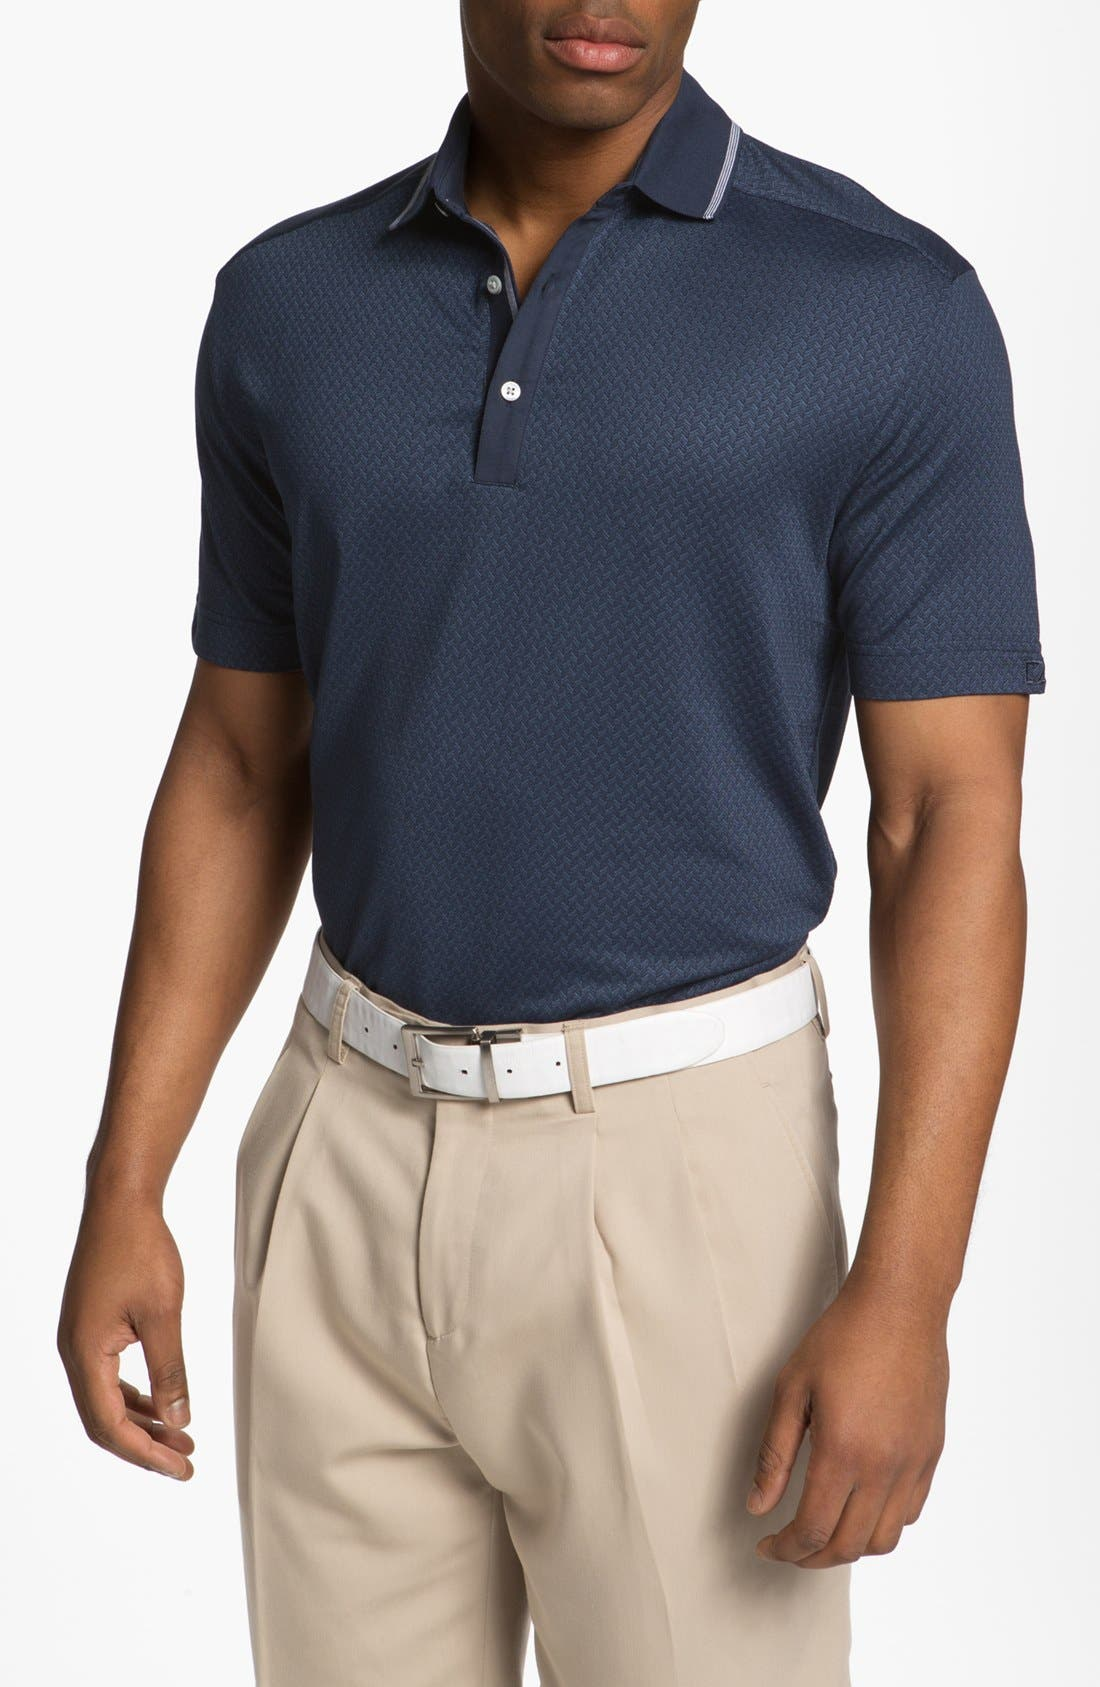 Main Image - Cutter & Buck 'Sumner' DryTec Polo (Big & Tall)